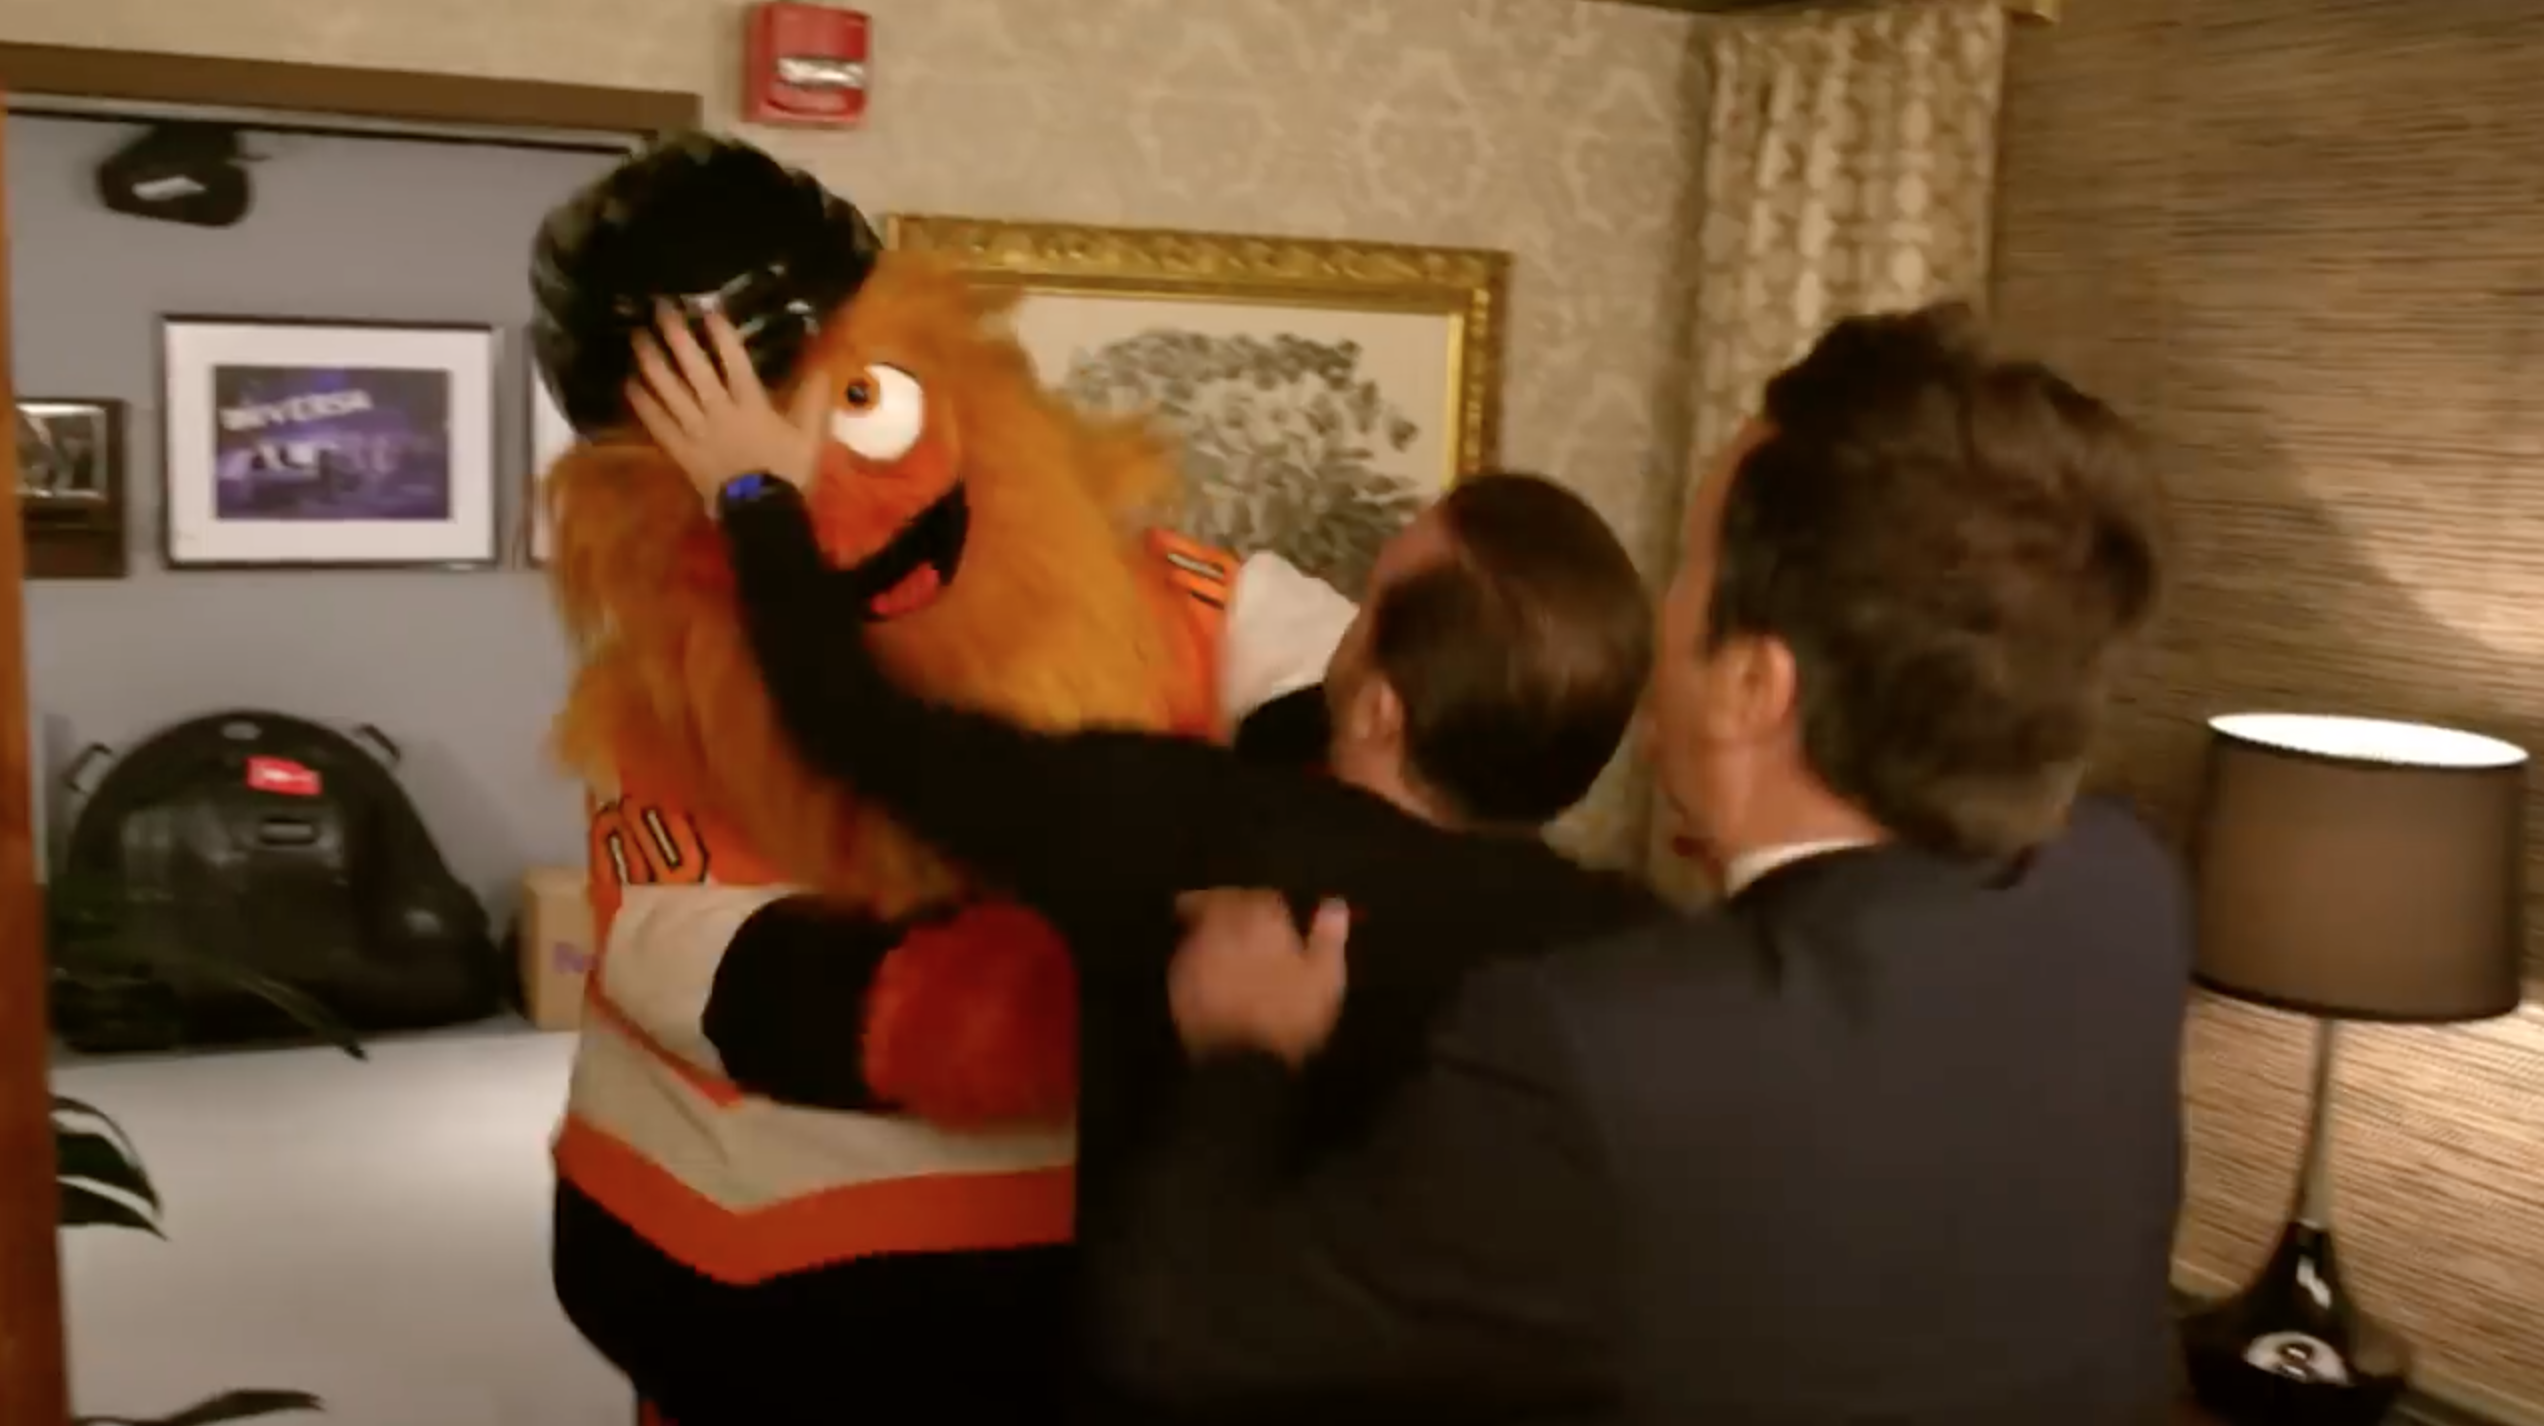 Gritty dances and fights with Jimmy Fallon on 'The Tonight Show'